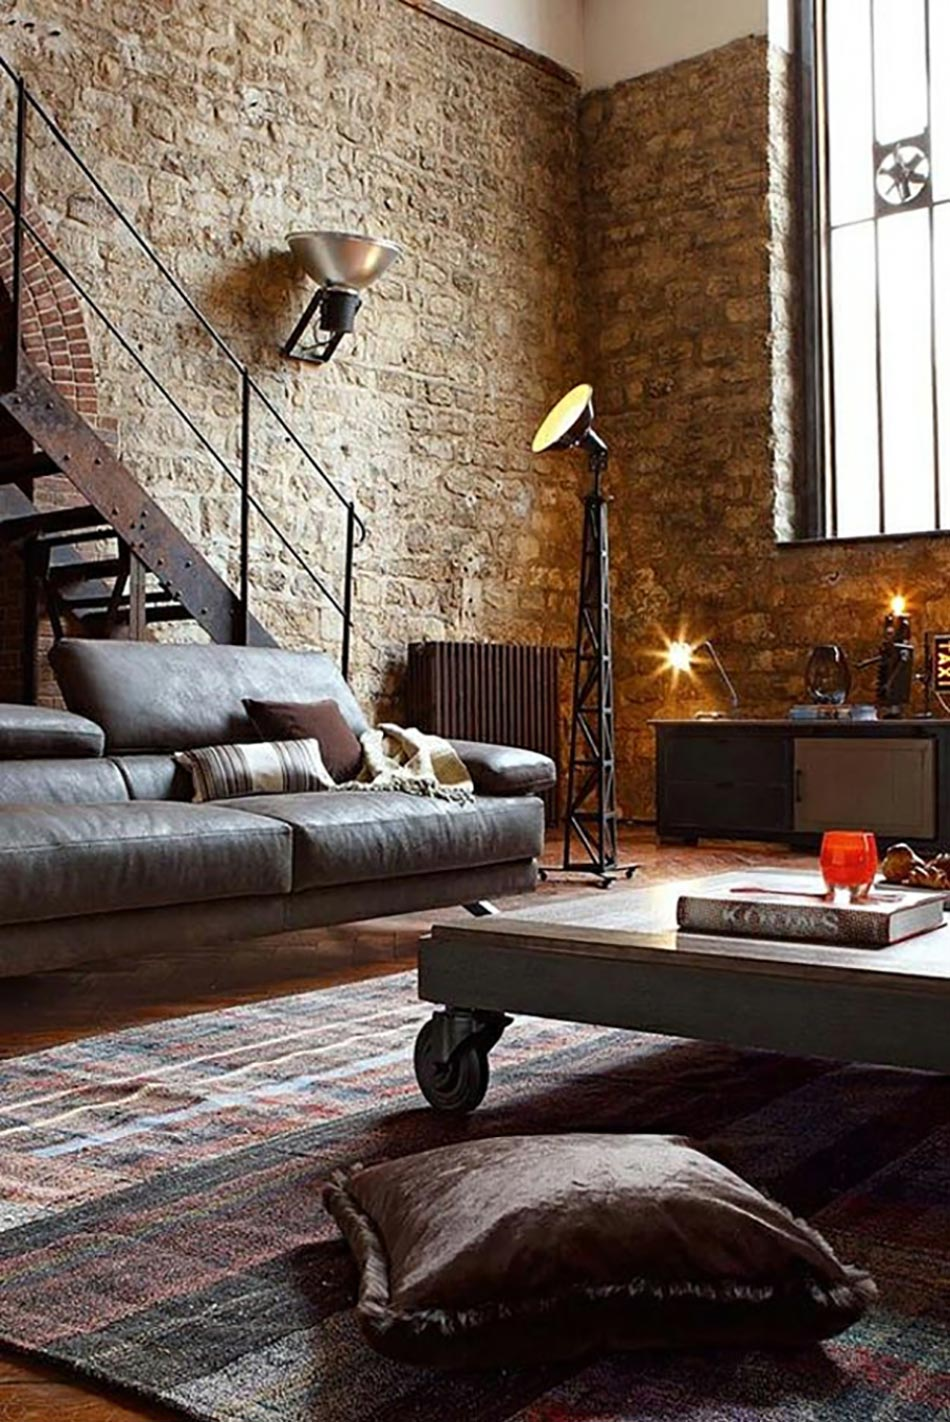 15 s jours anim s par un style industriel contemporain design feria - Idee deco industrielle ...